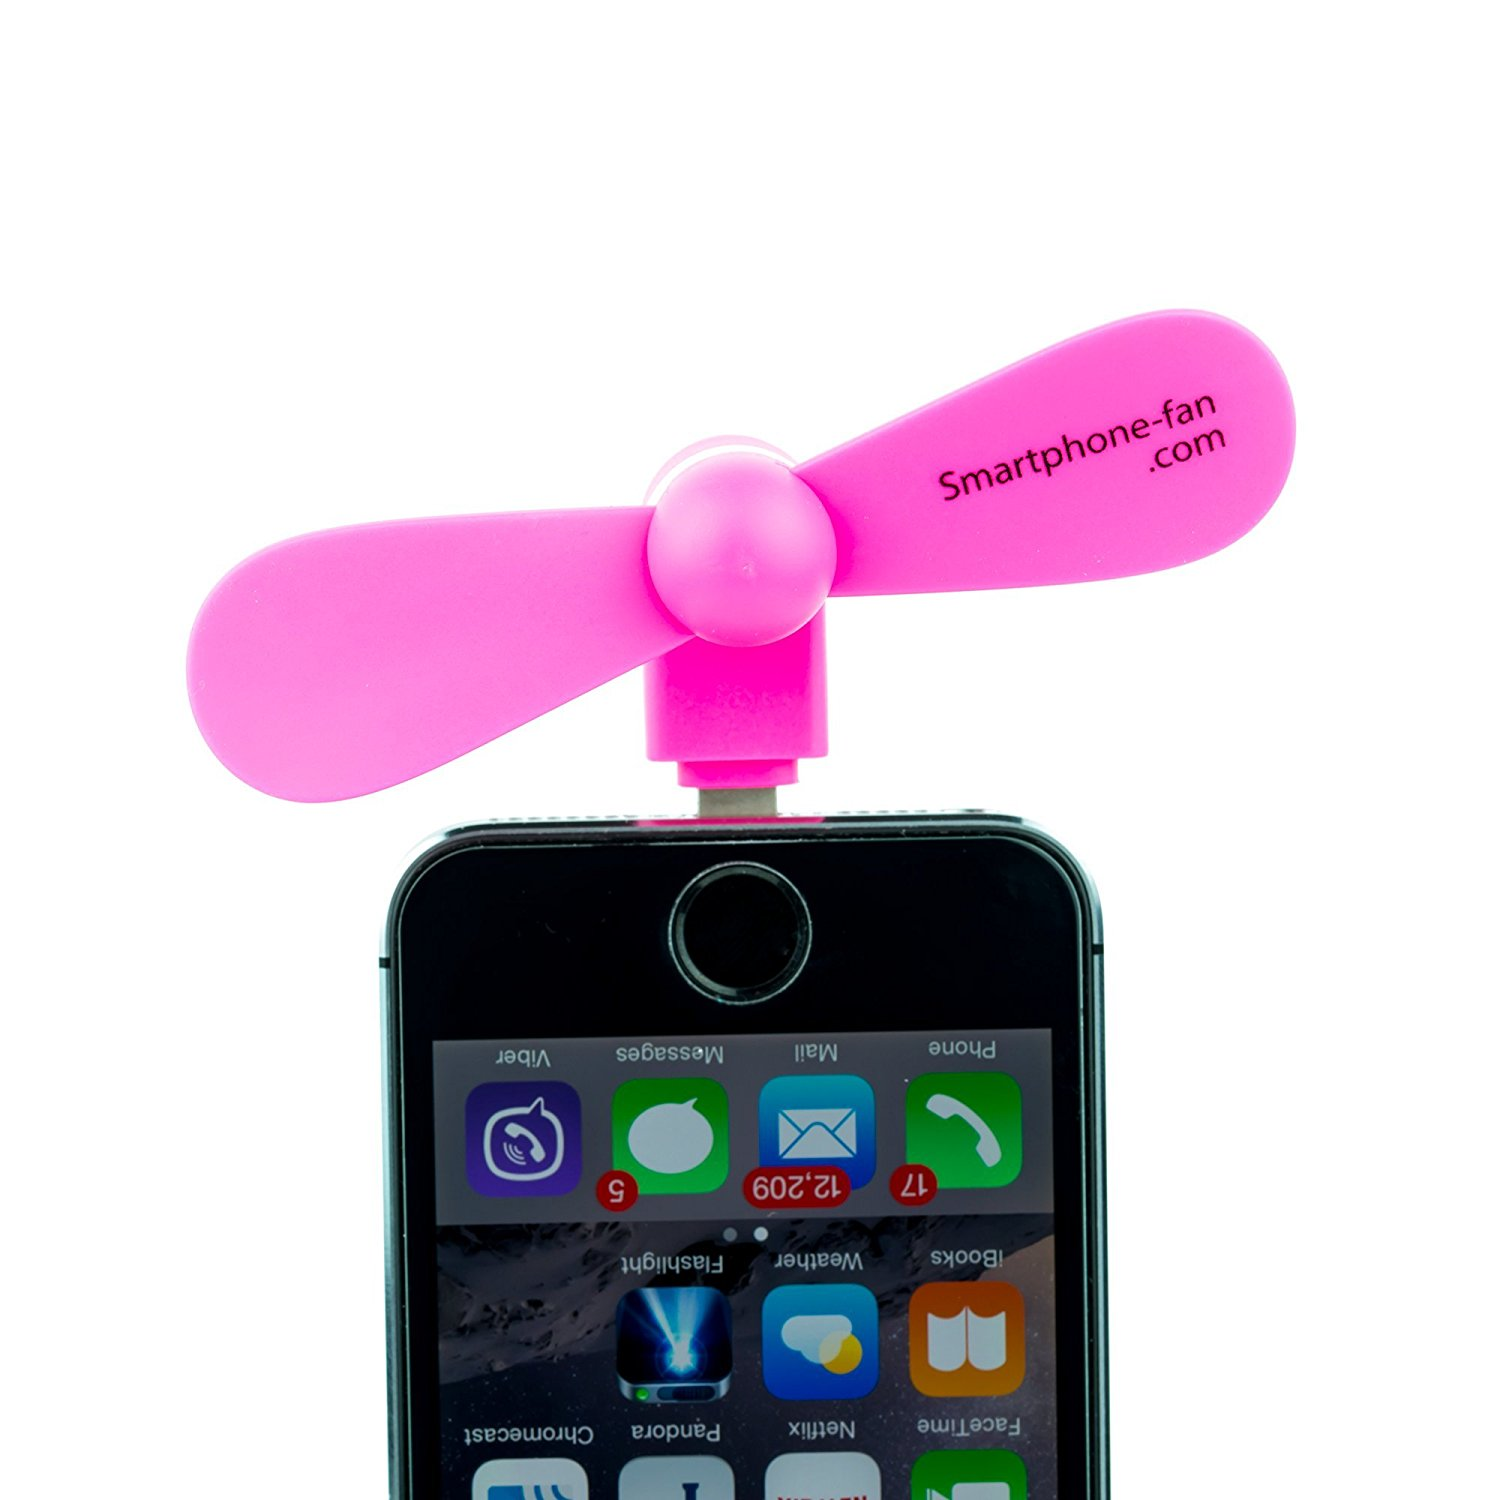 13 Mini iPhone Fan Attachment